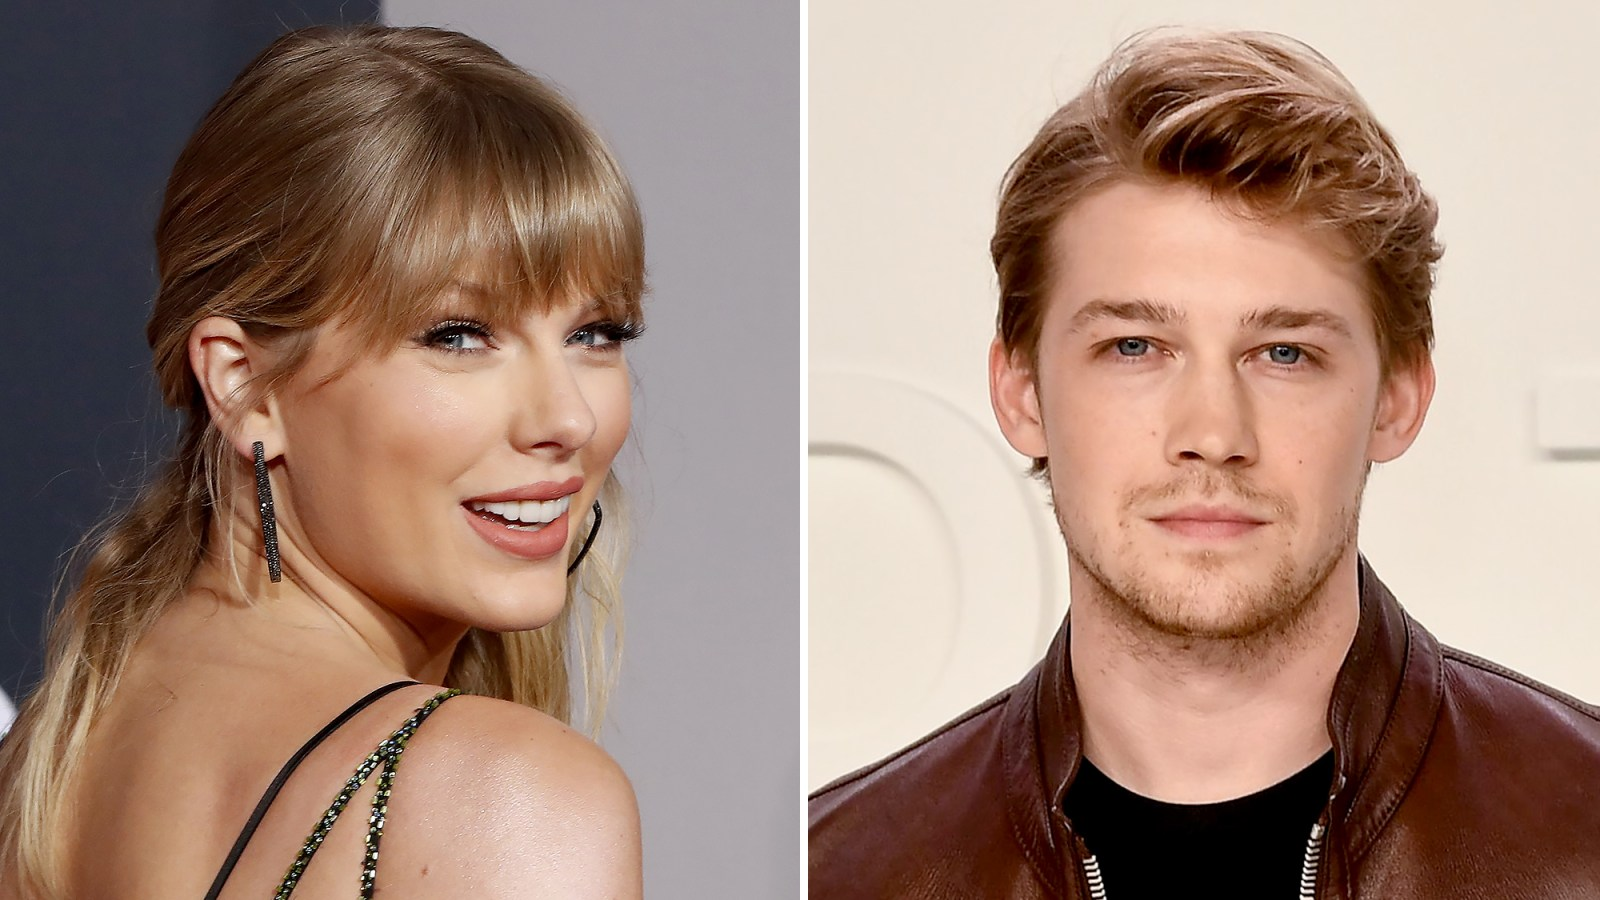 Taylor Swift wants to rush Marriage with Joe Alwyn